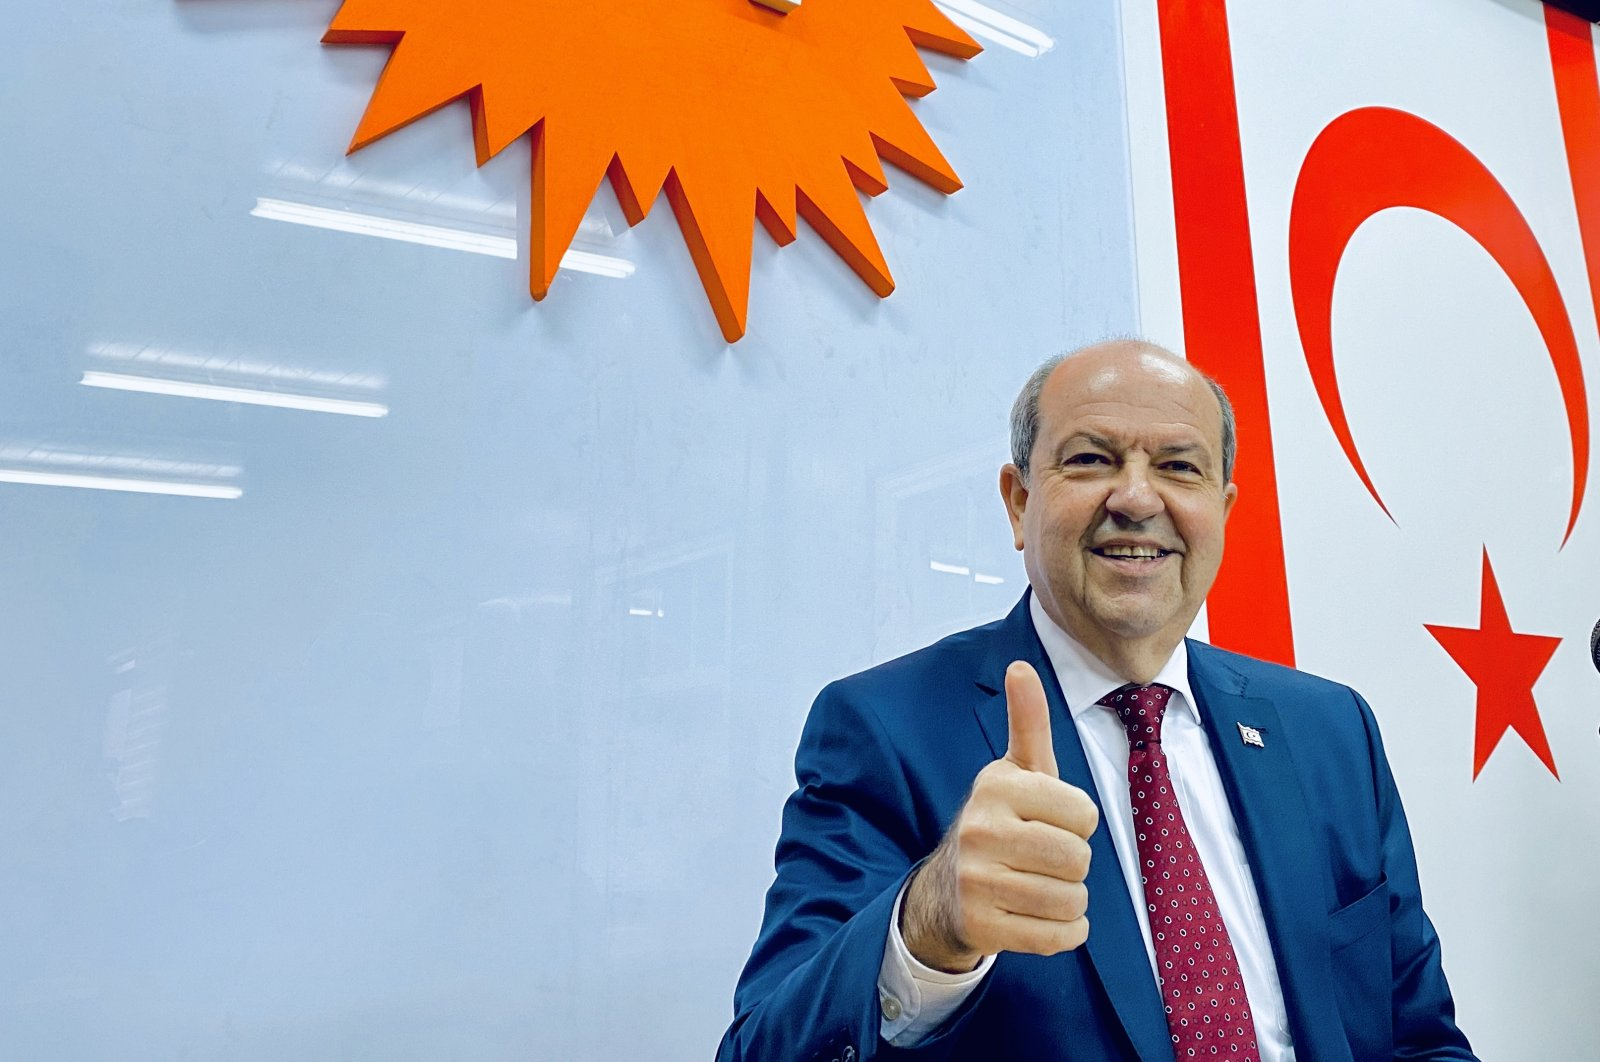 The majority of participants in the survey said they will vote for Ersin Tatar. (DHA File Photo)